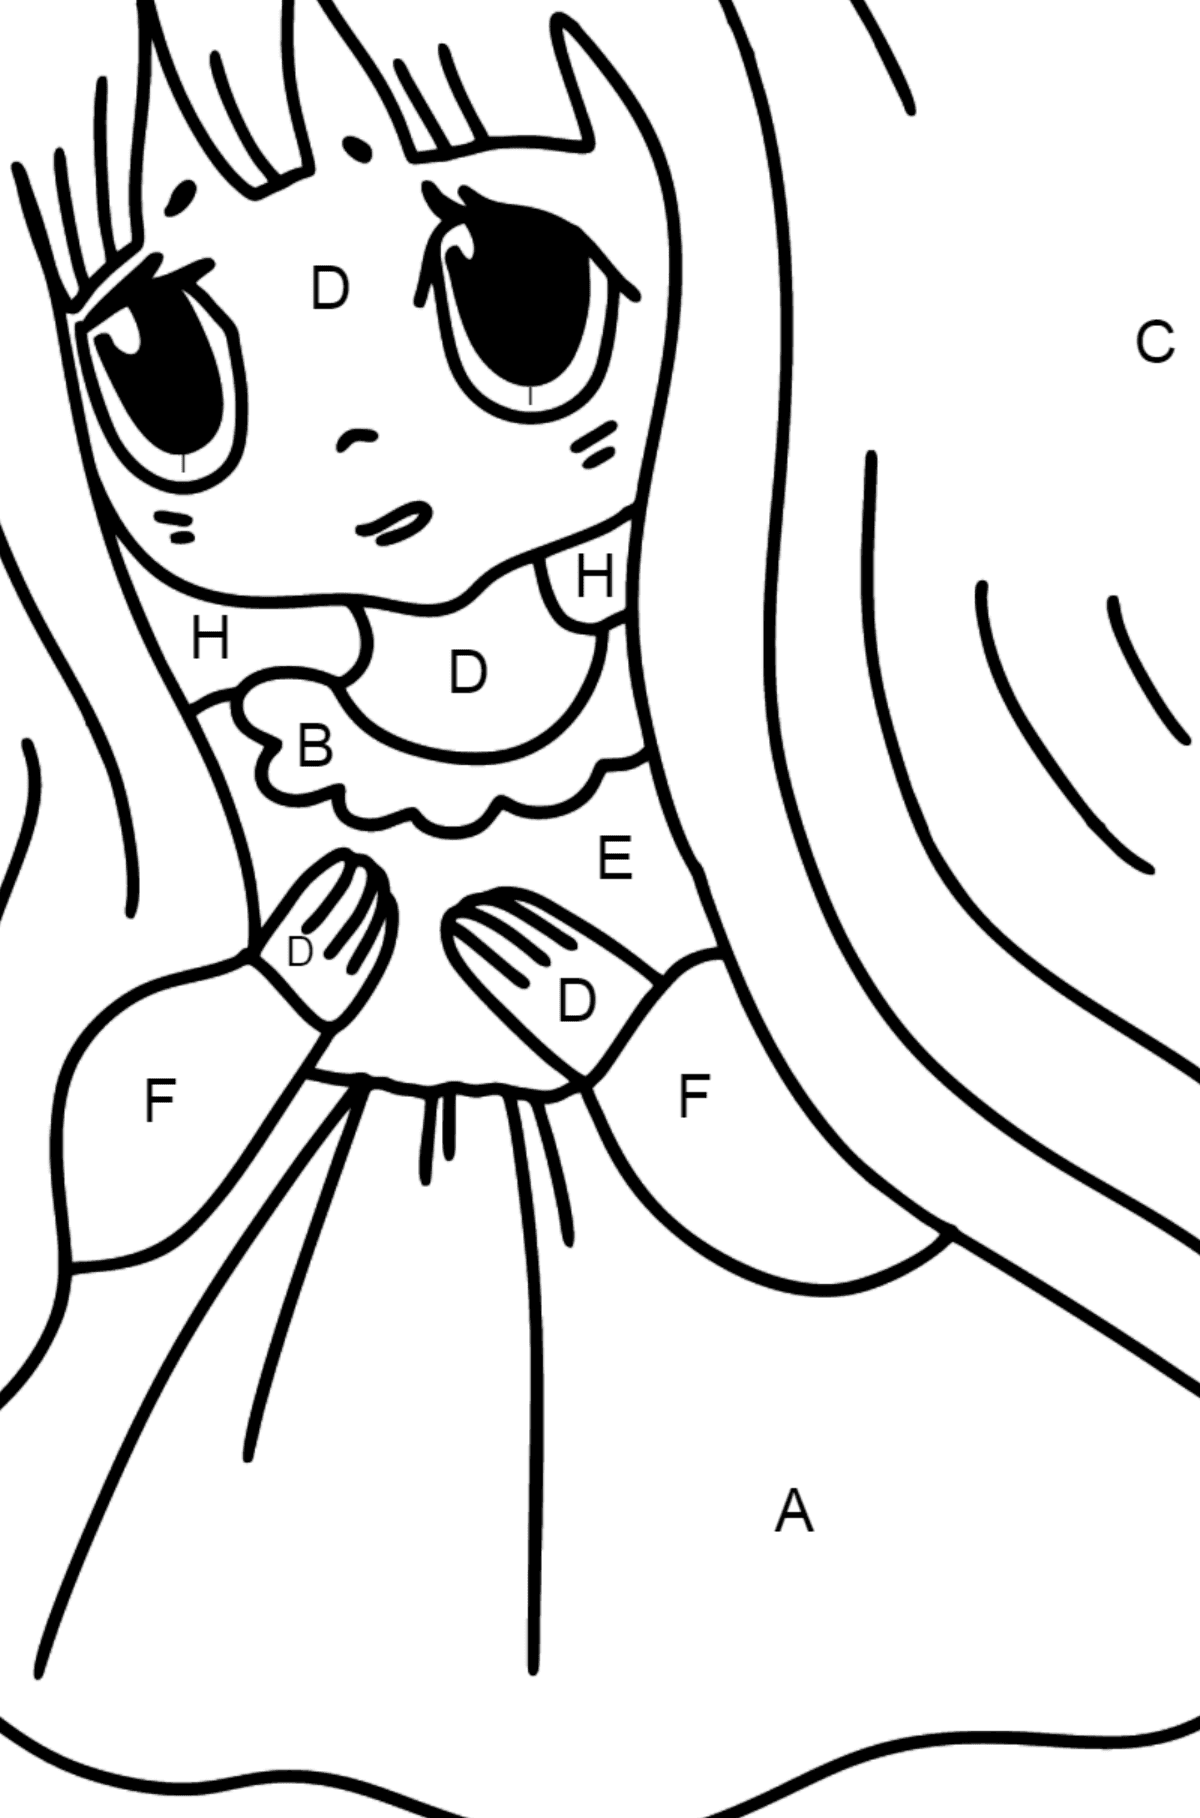 Anime Sad Girl Coloring Pages - Coloring by Letters for Kids